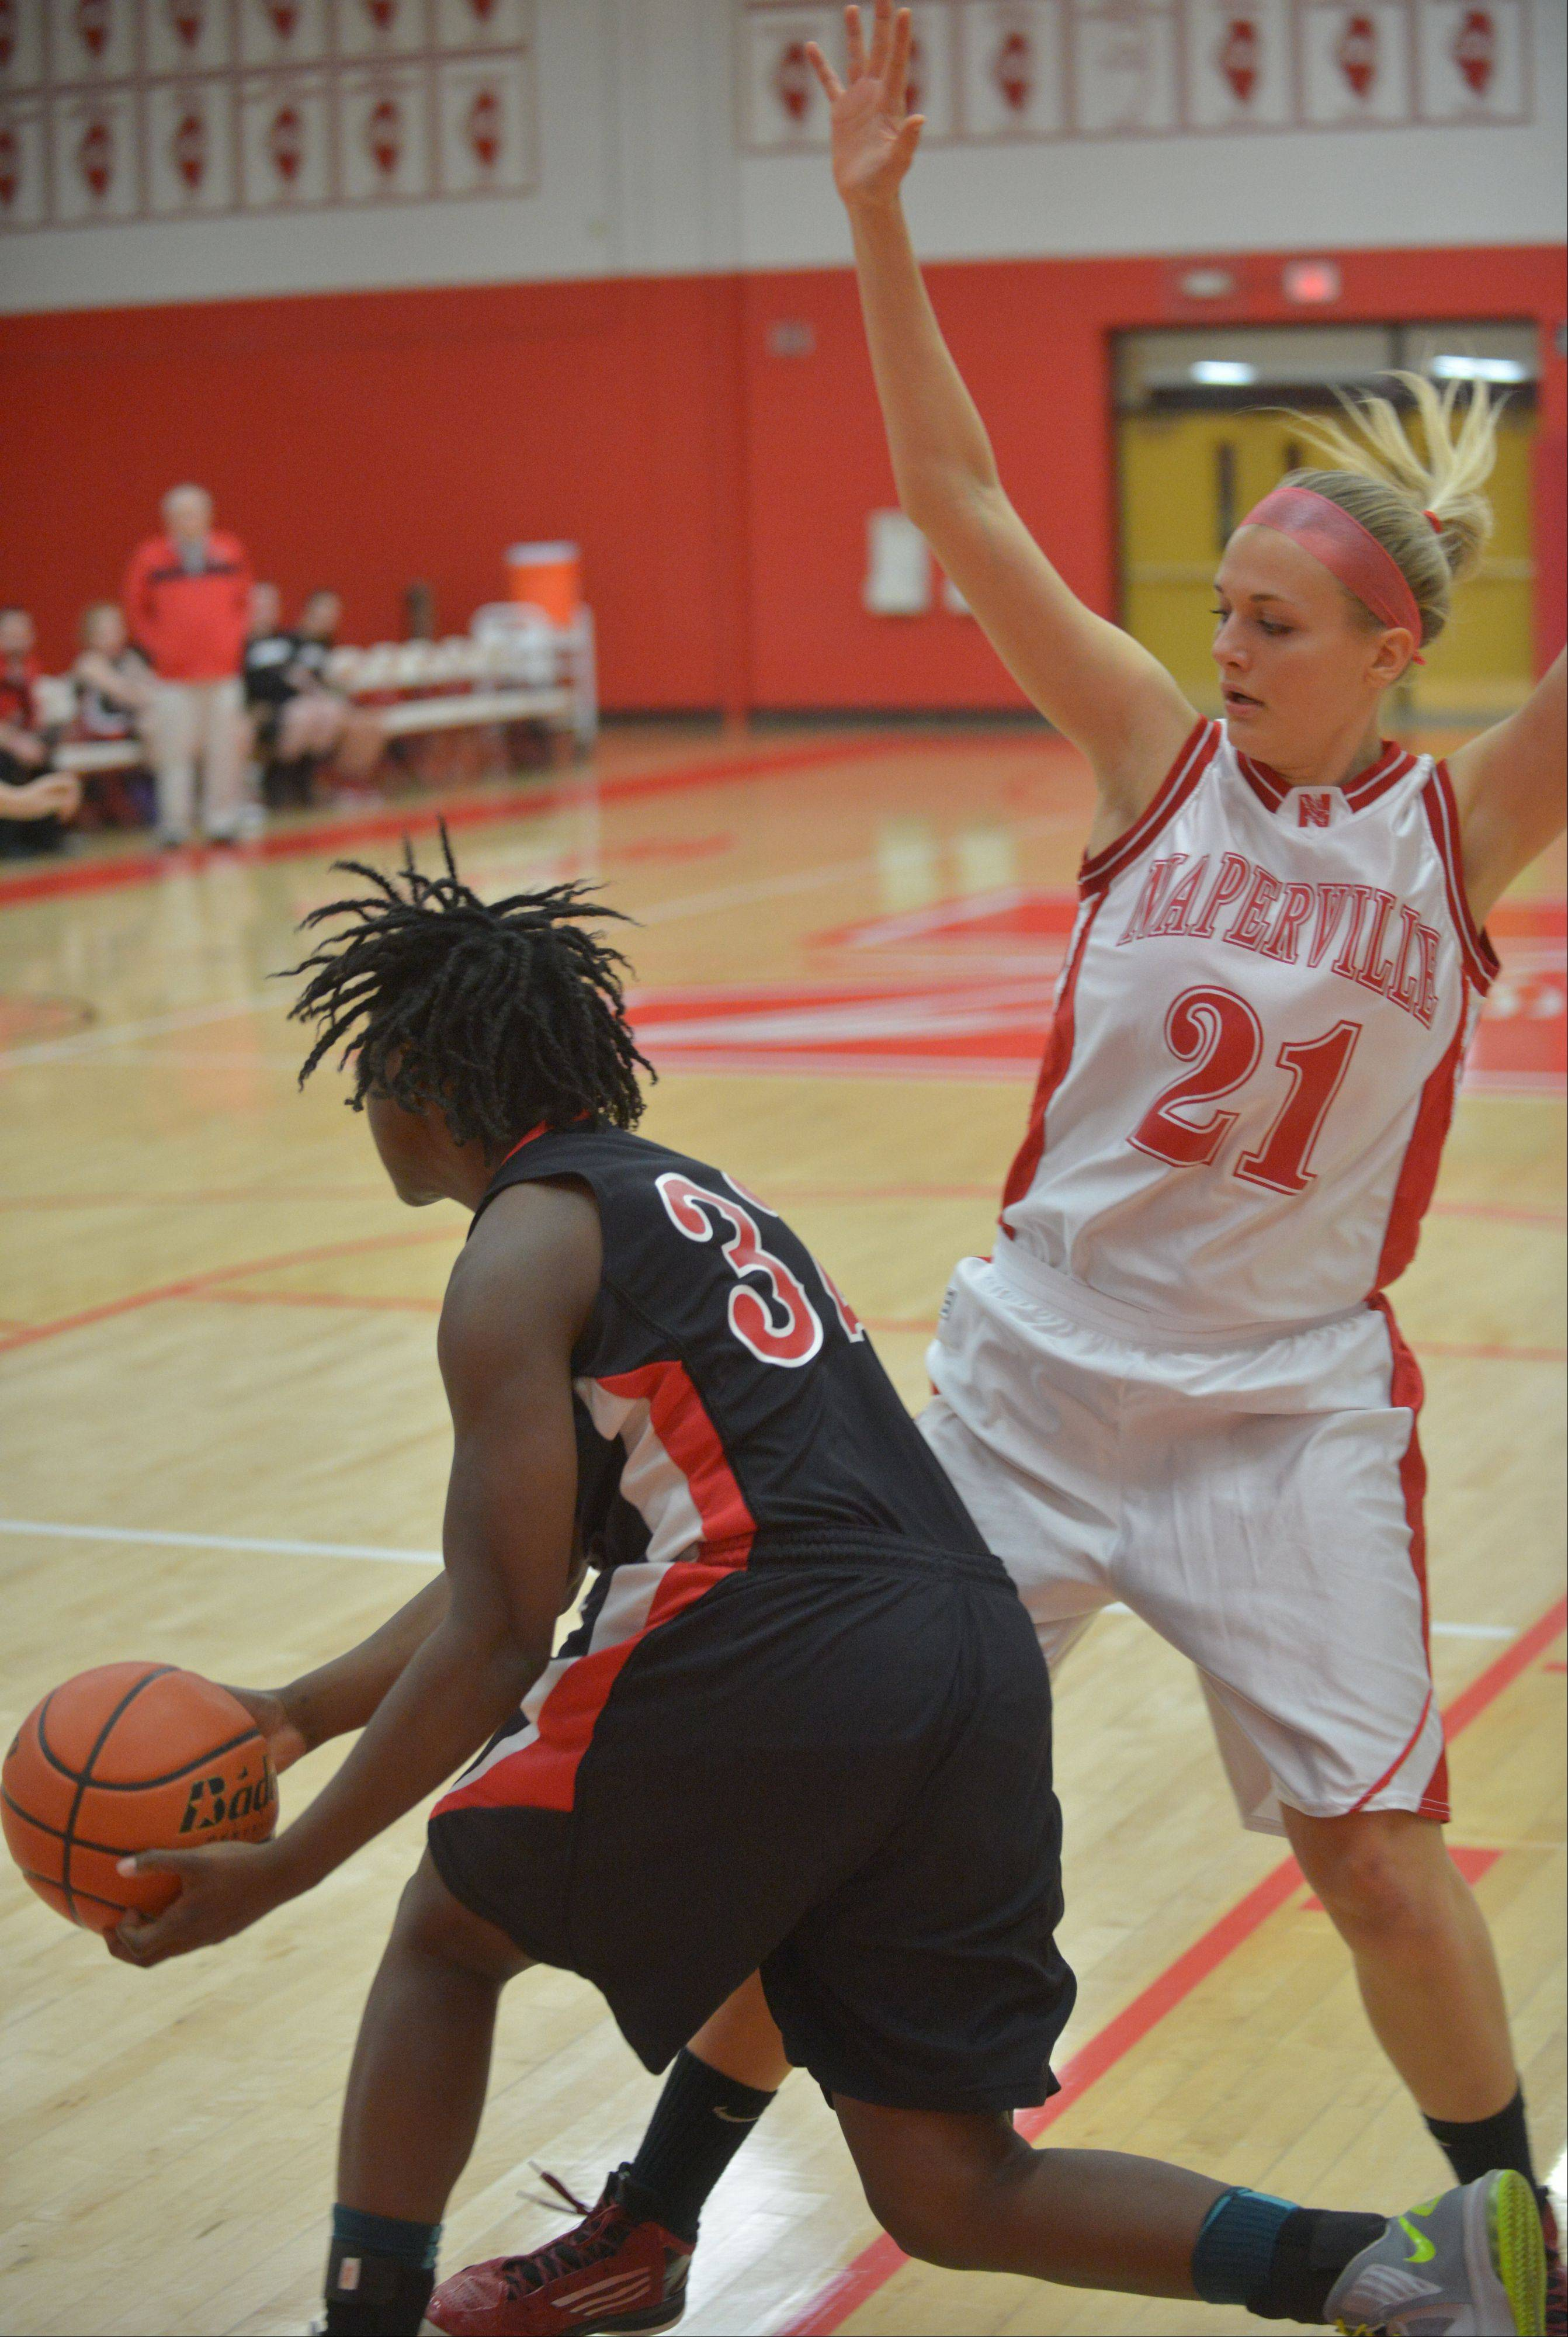 Photos from the Glenbard East at Naperville Central girls basketball game Thursday, Dec. 12.